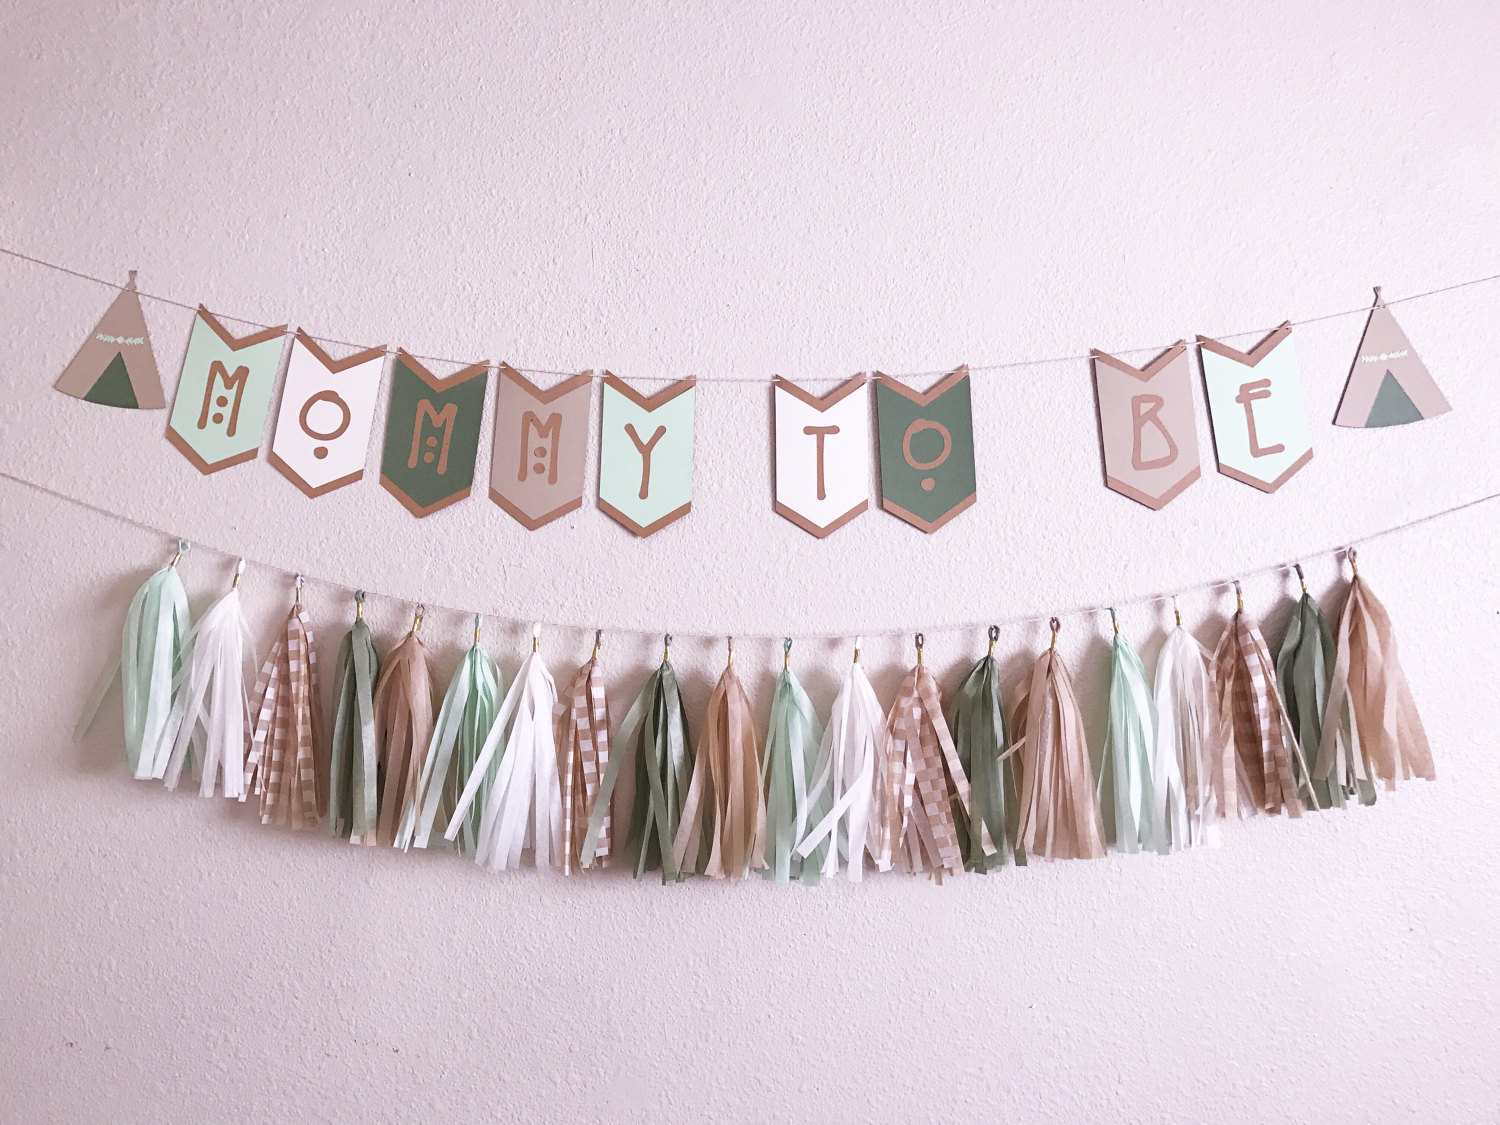 Full Size of Baby Shower:89+ Indulging Baby Shower Banner Picture Inspirations Baby Shower Banner Baby Shower Decorations Shower Baby Baby Shower Food Baby Shower De Baby Shower Party Marvelous Baby Shower Banner 90 Together With House Design Plan With Baby Shower Banner